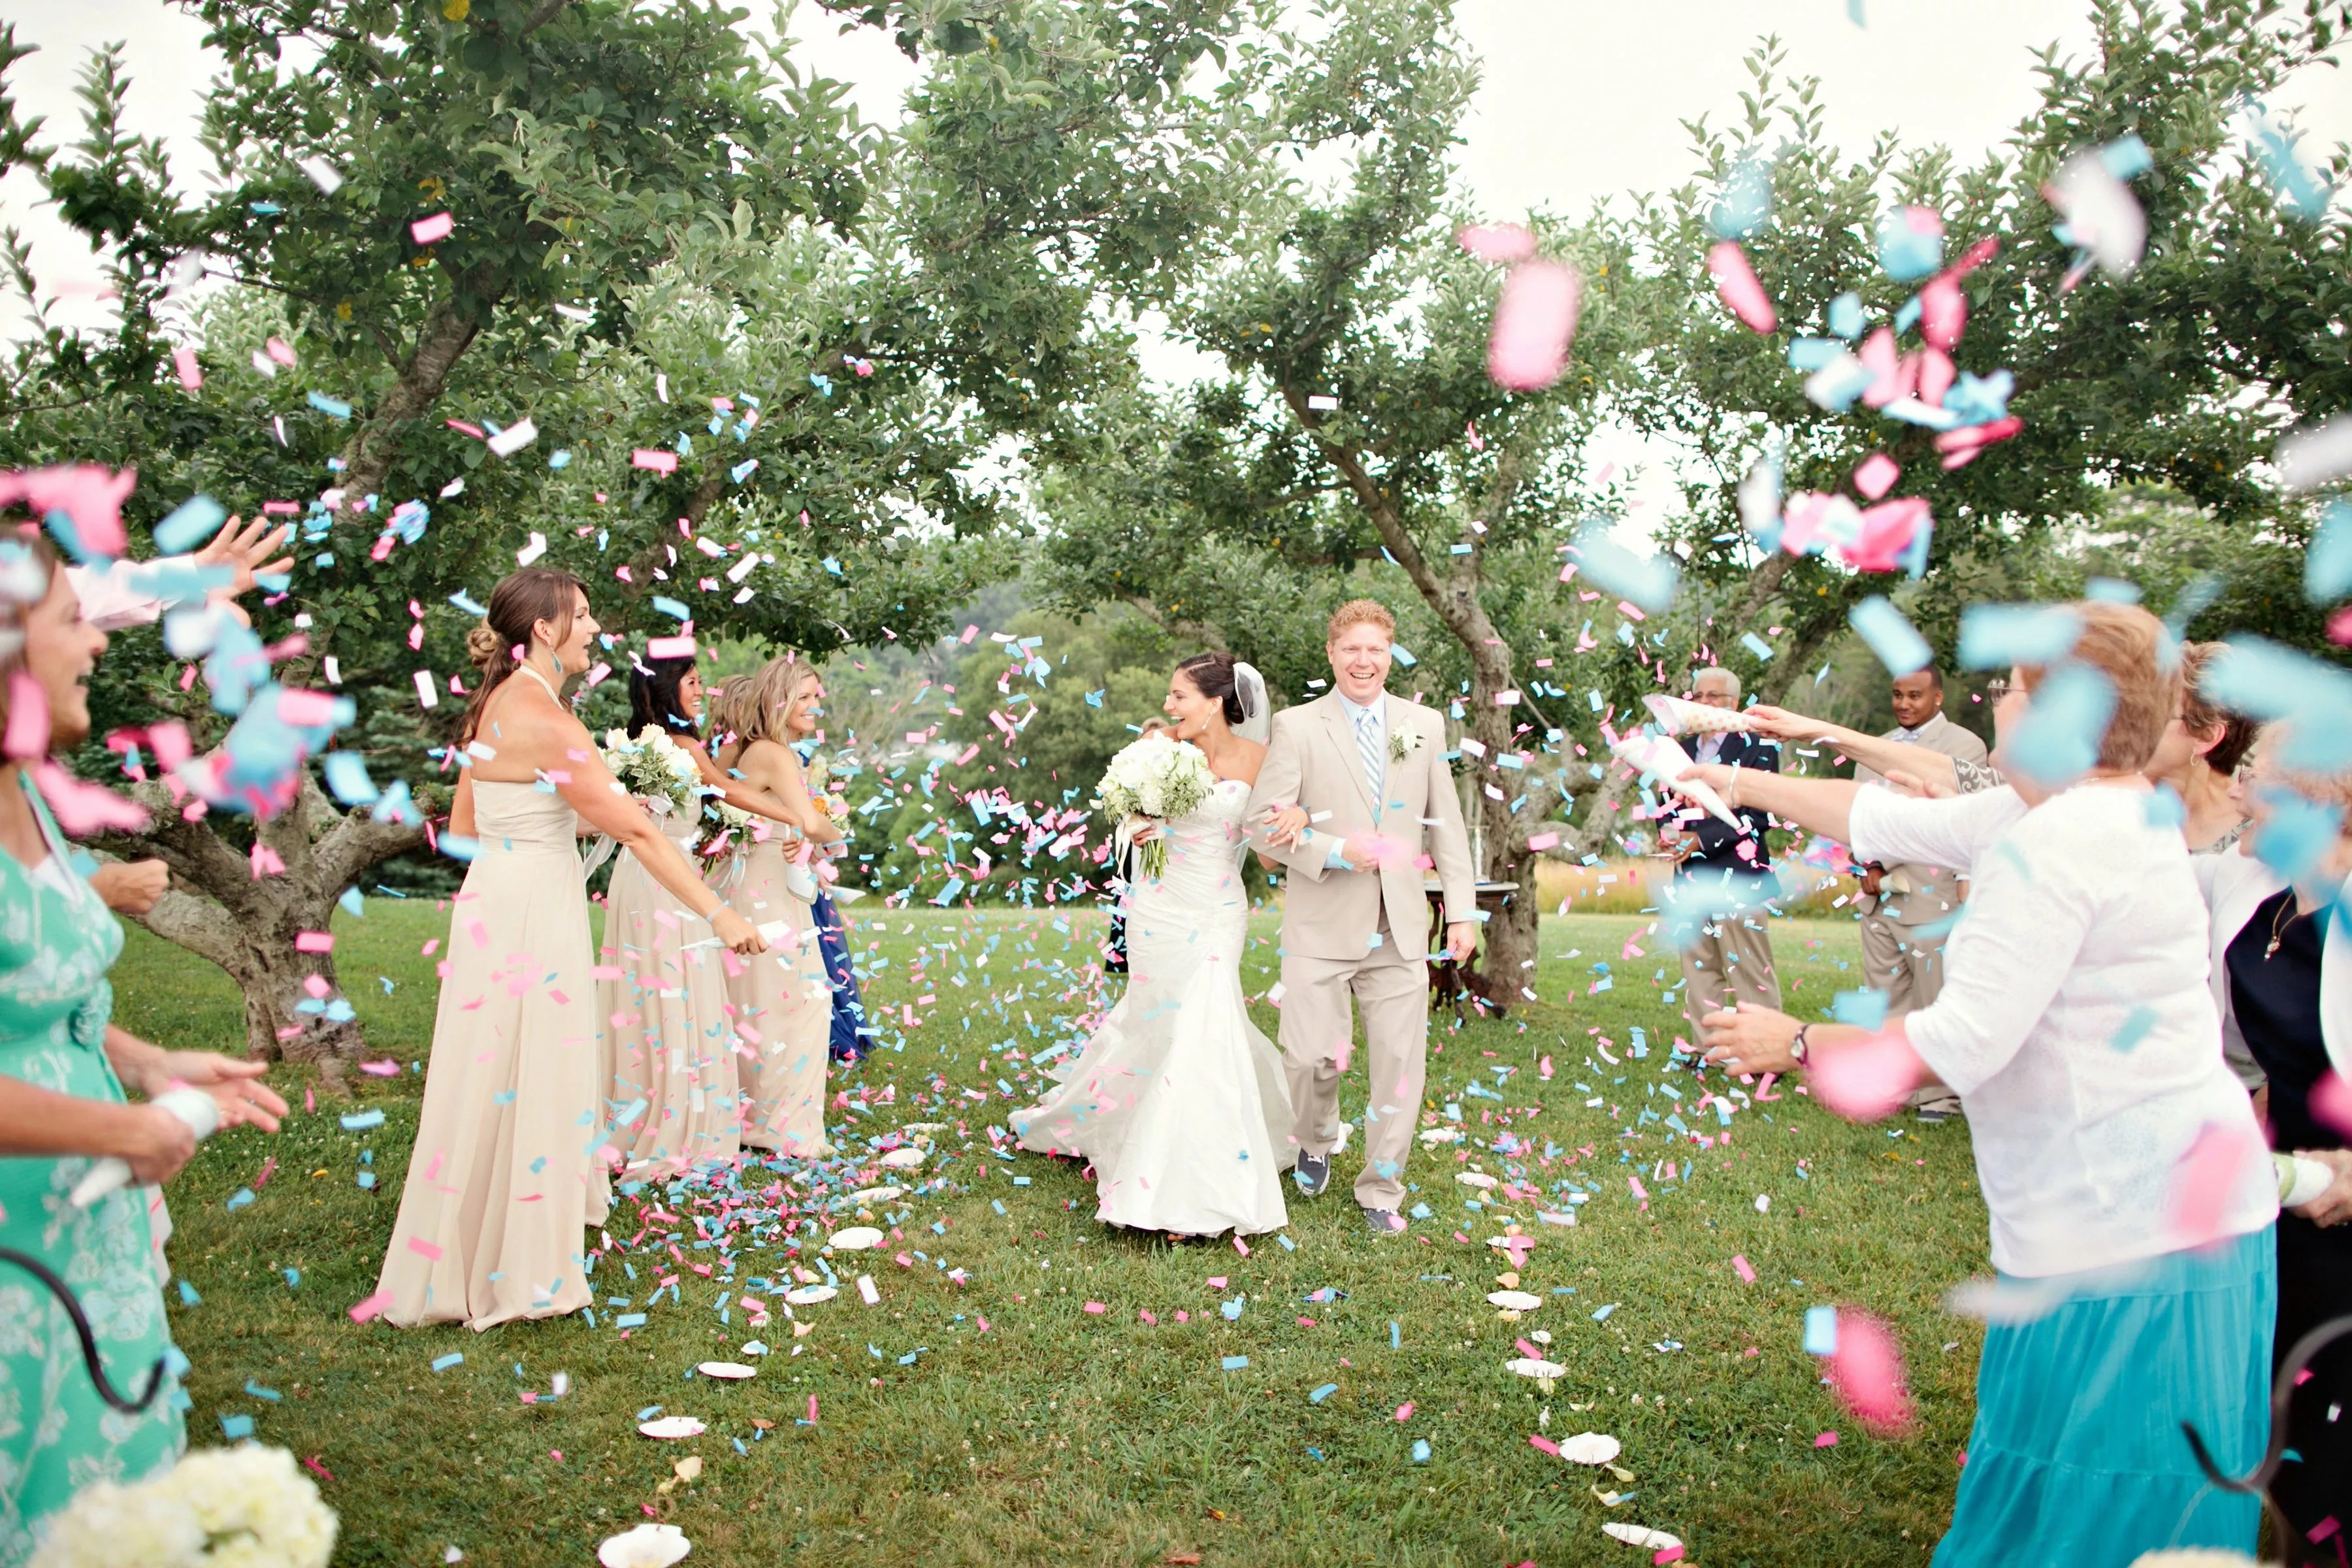 an authentic casual wedding in falmouth ma album wedding send off ideas